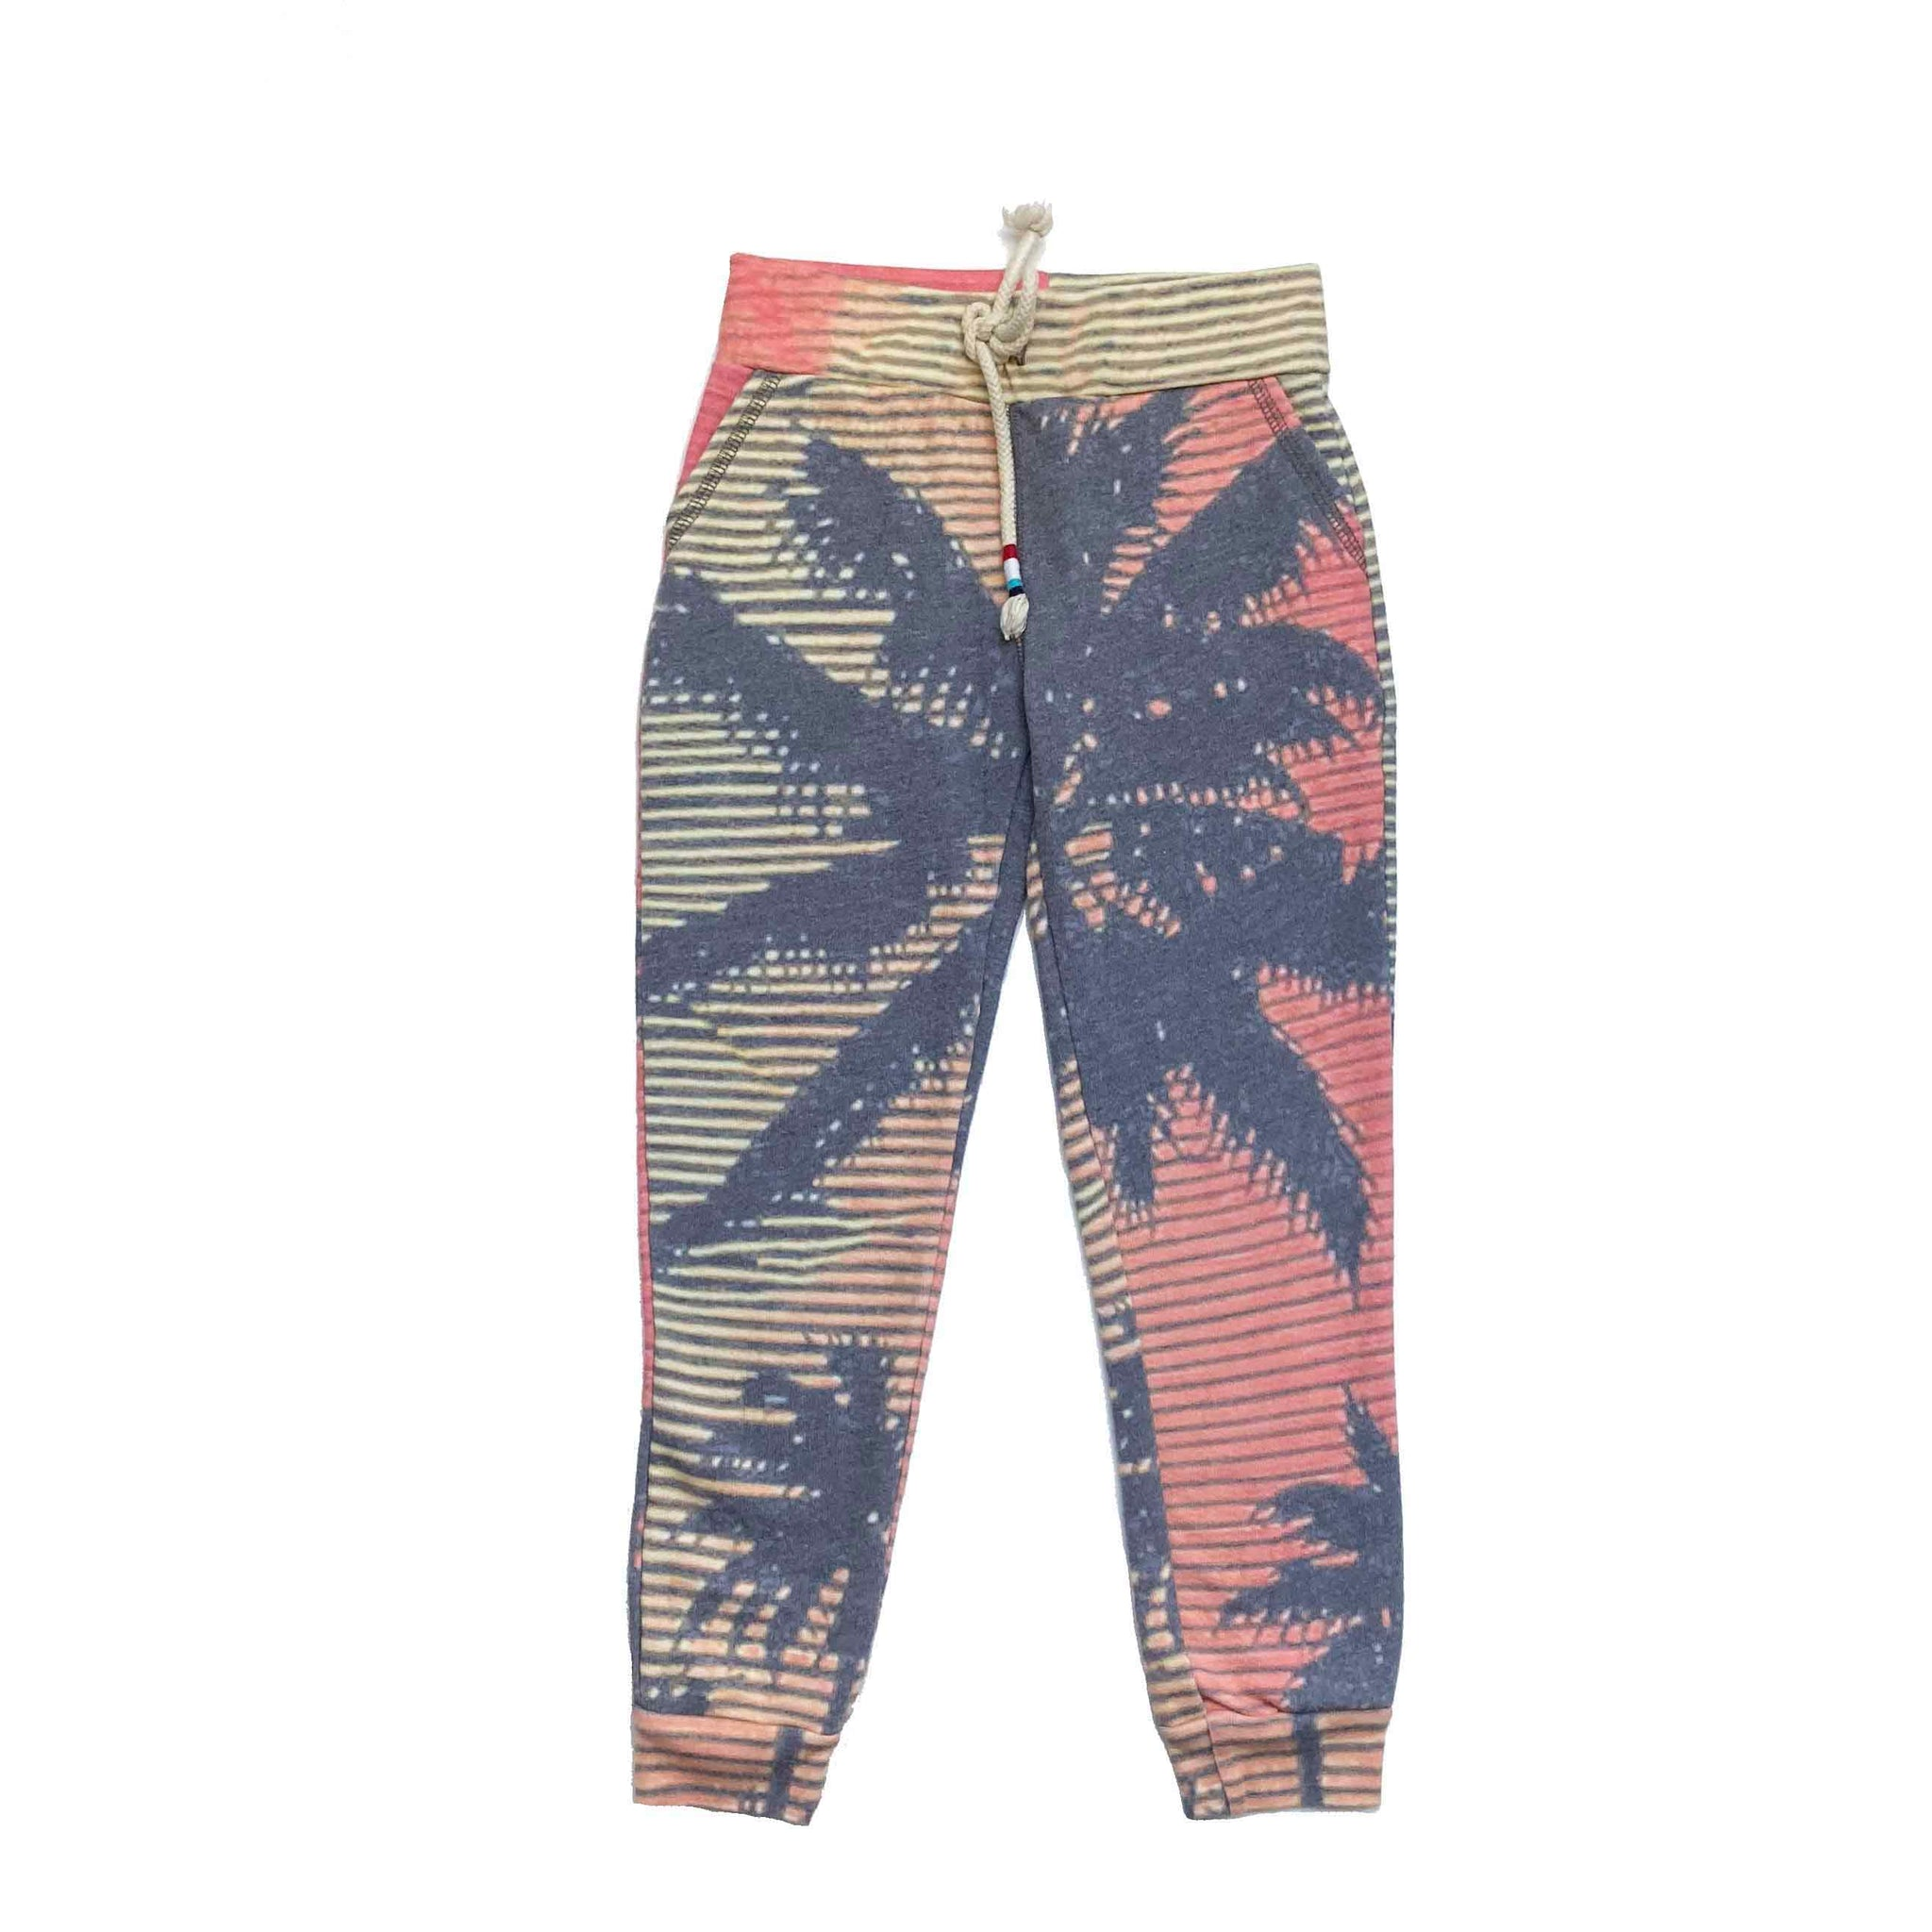 SOL ANGELES PALM JOGGERS 4 YEARS